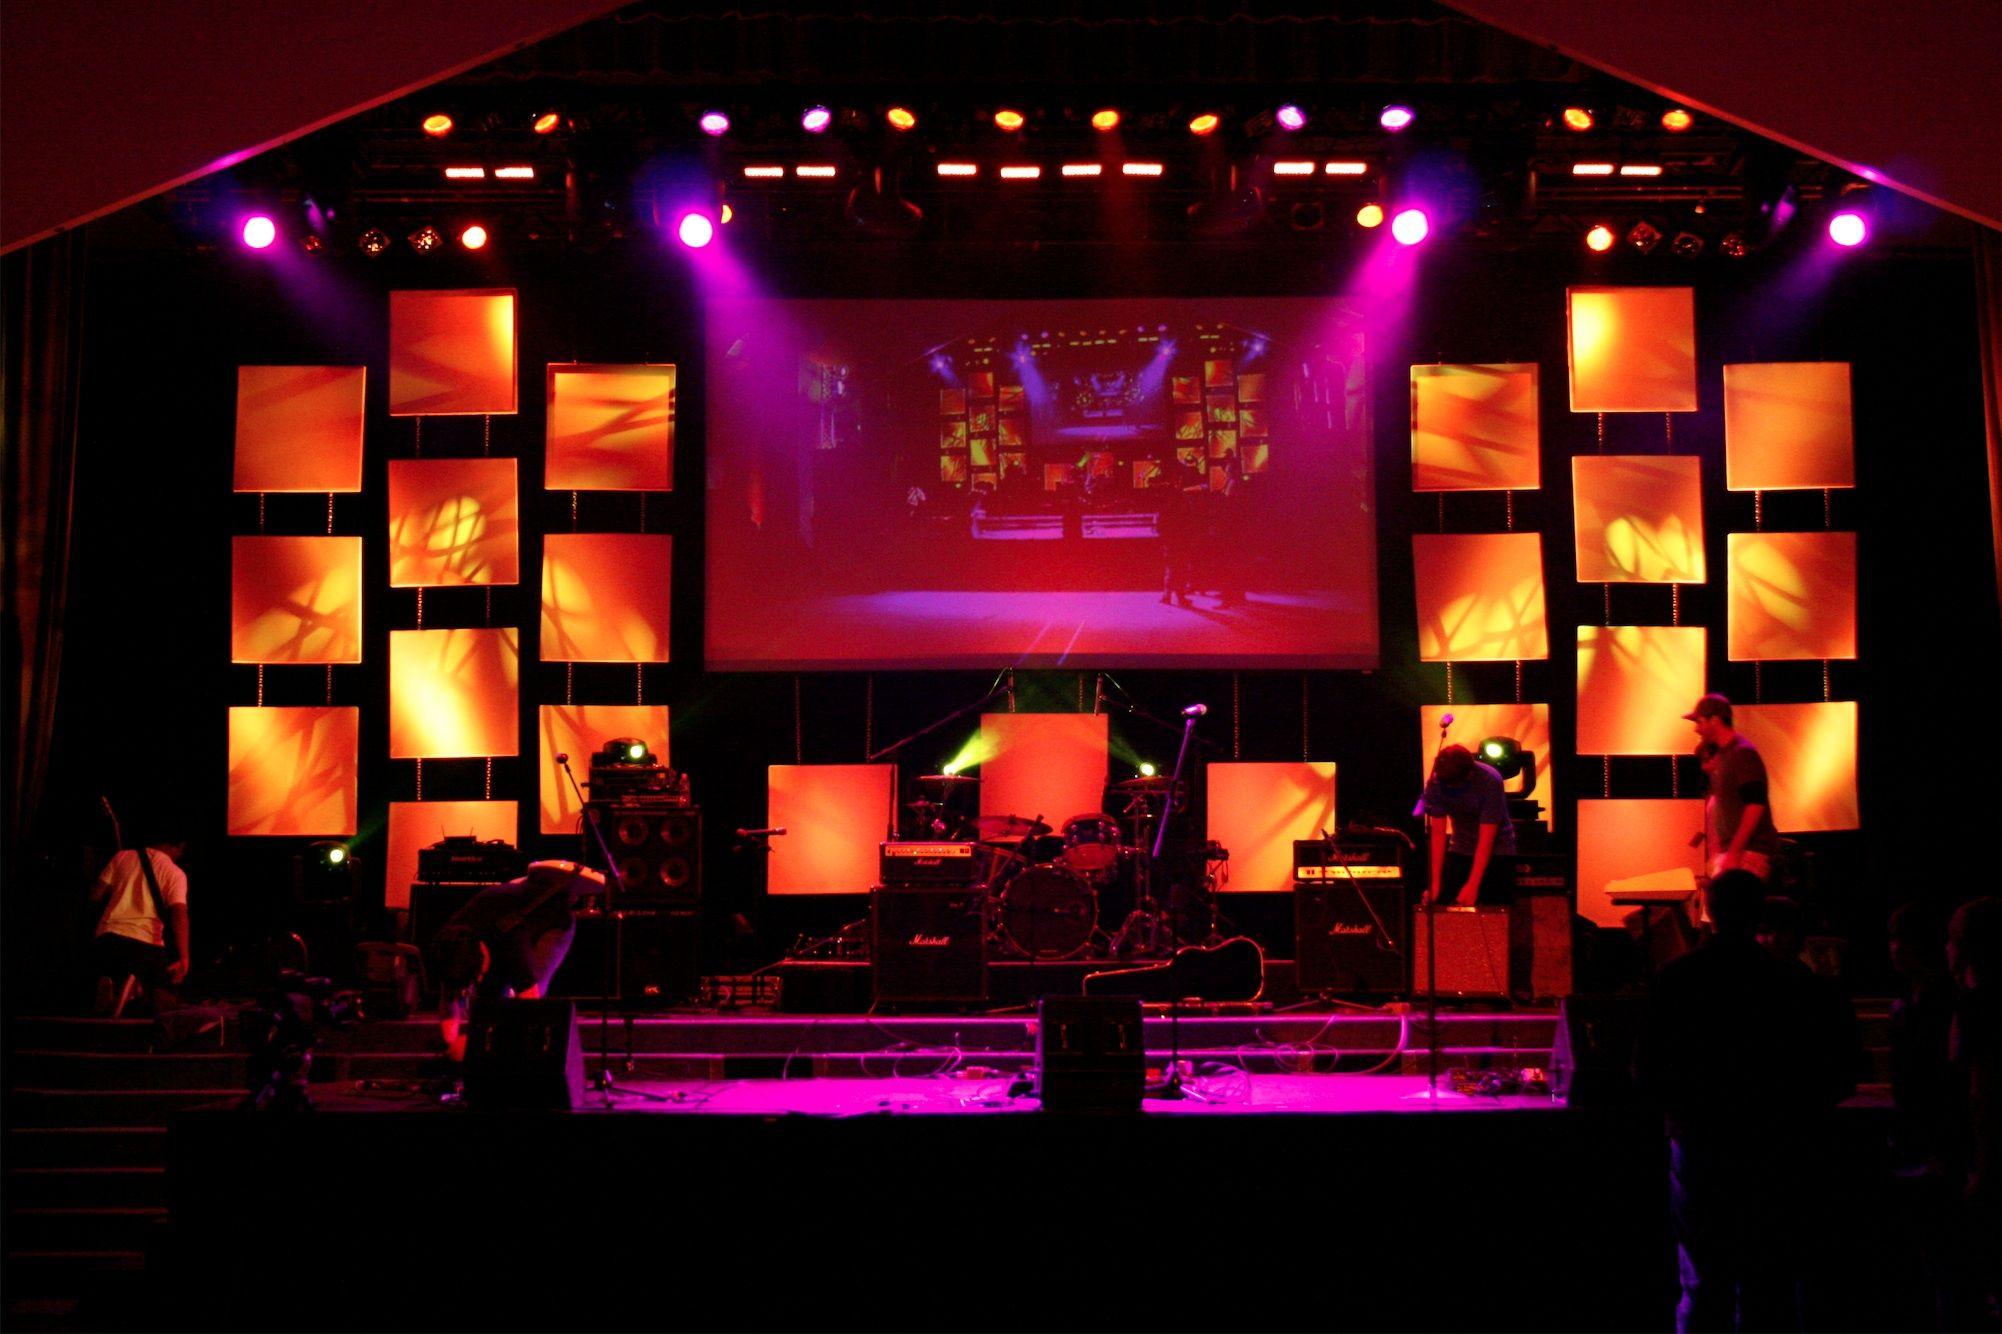 17 best images about stage design on pinterest led panel church stage design and a box - Concert Stage Design Ideas